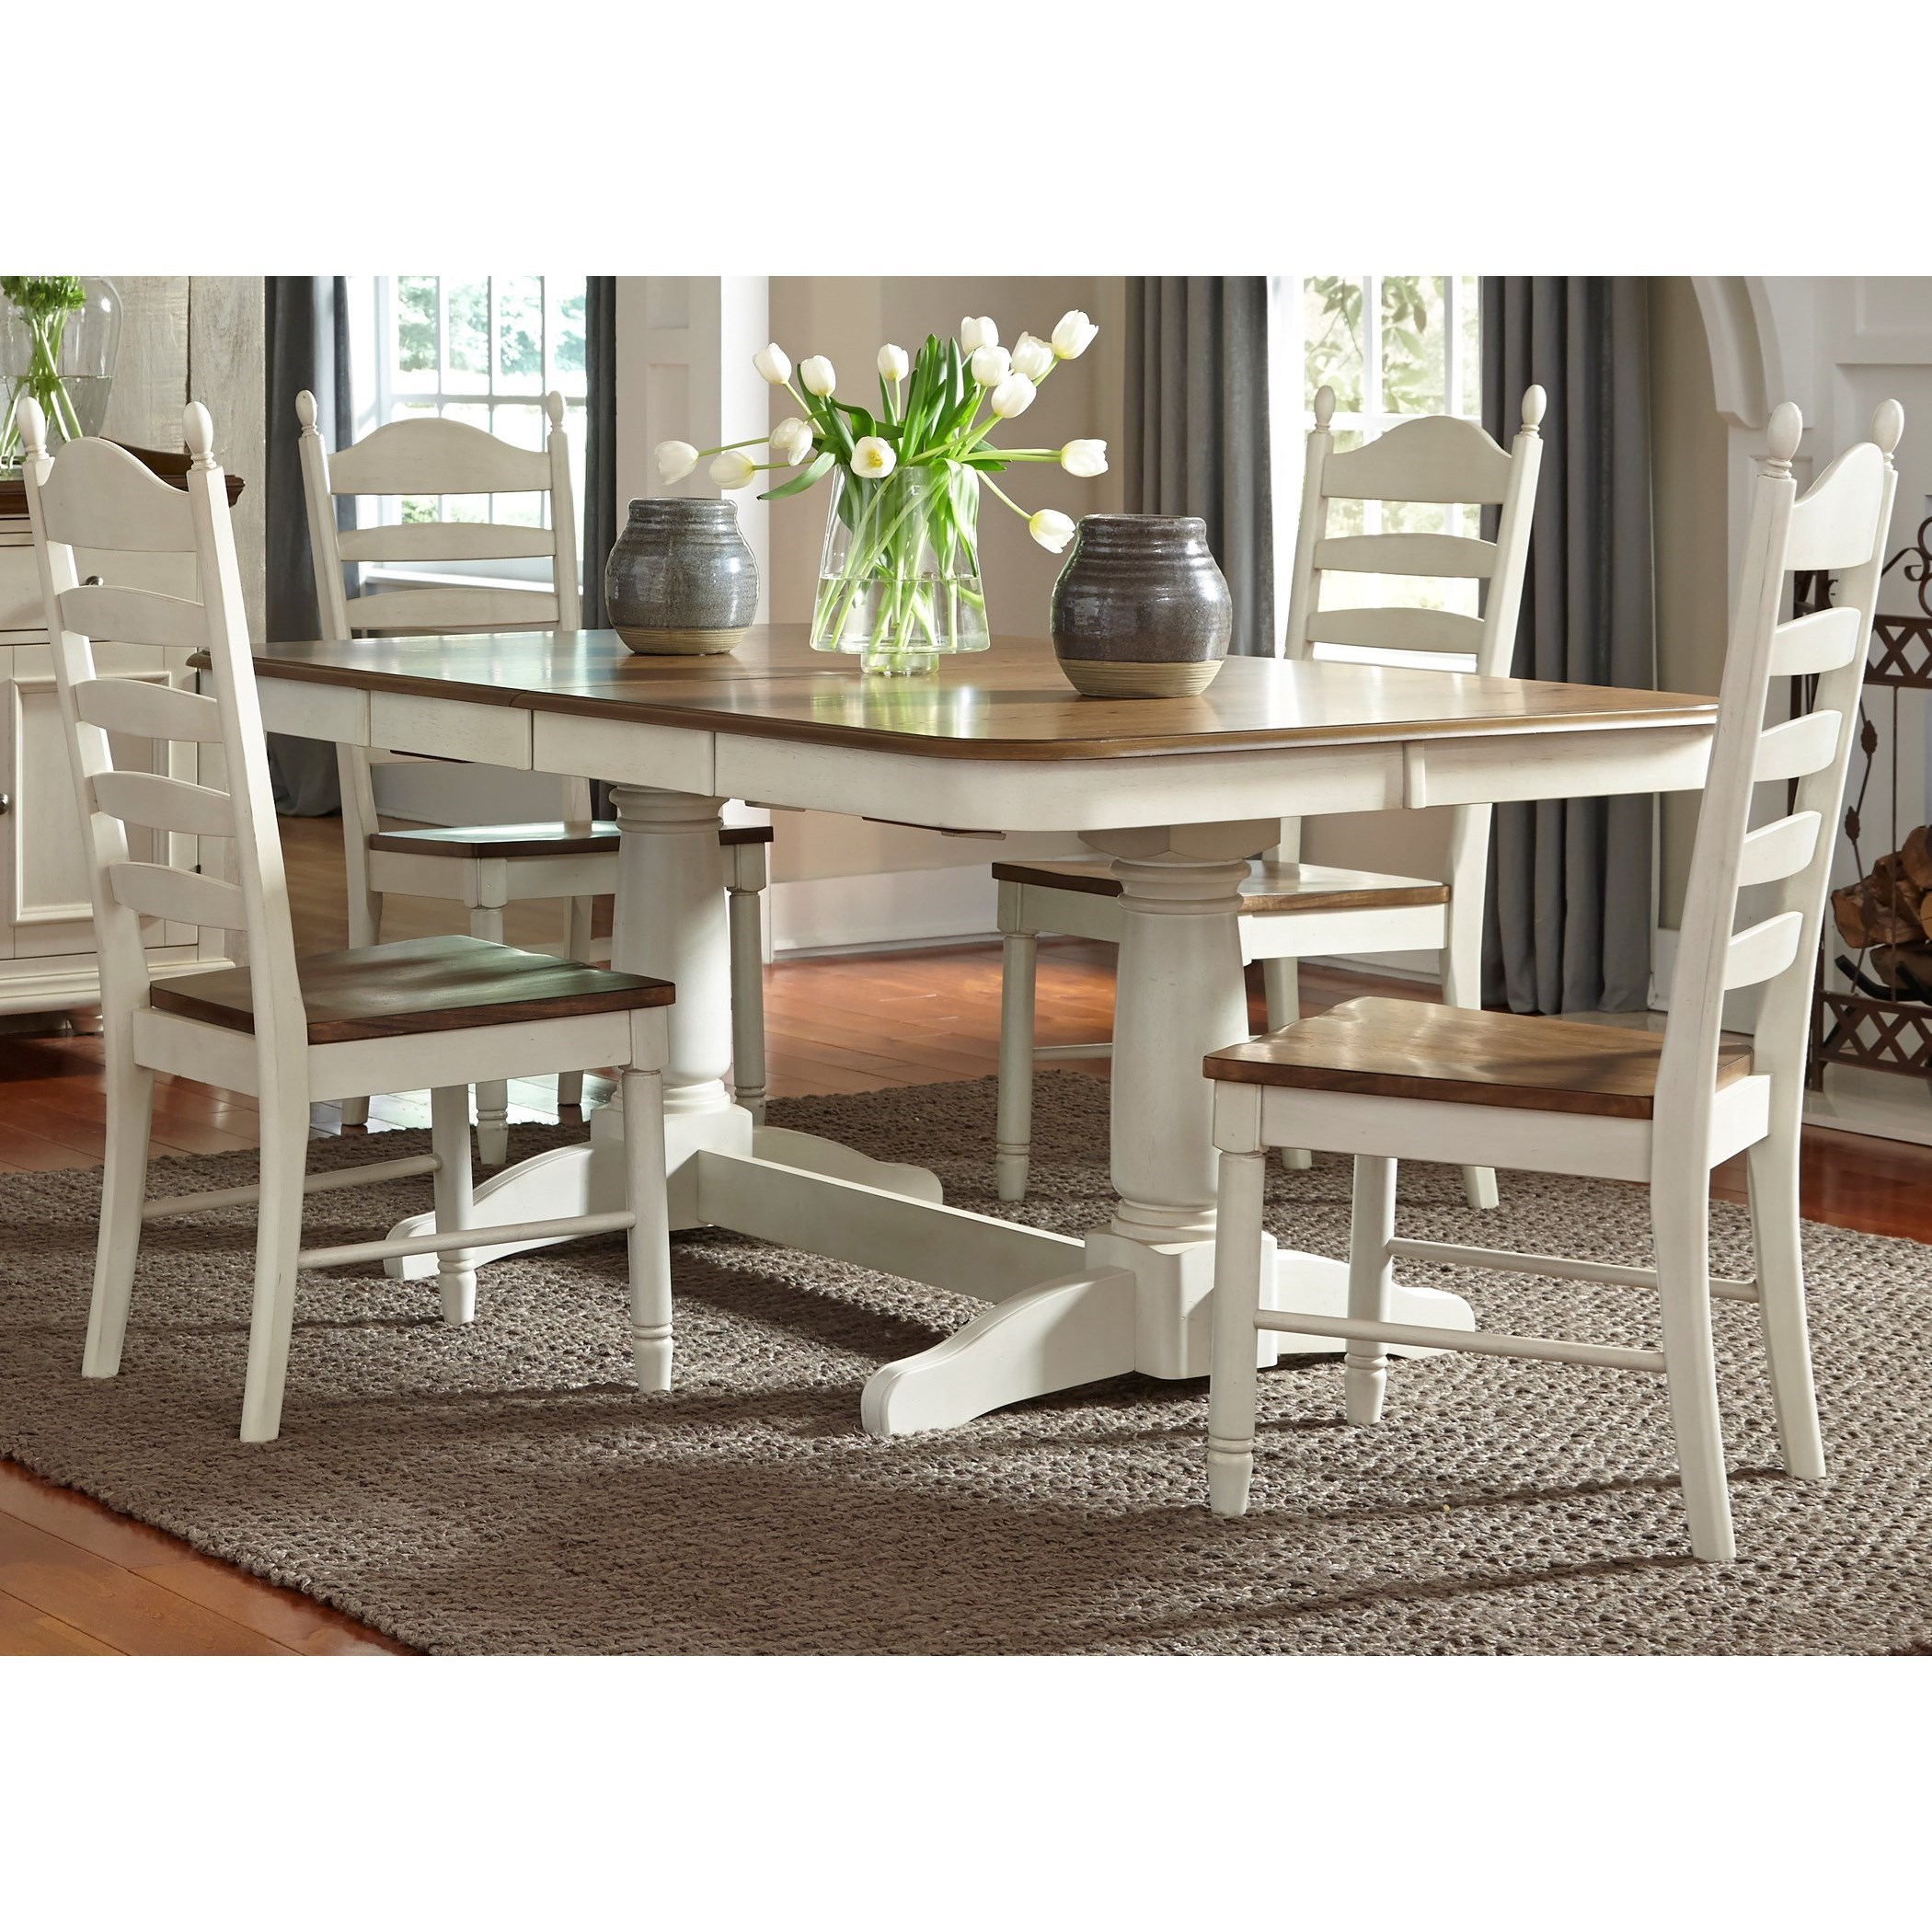 Springfield Dining 5 Piece Double Pedestal Table & Chair Set by Freedom Furniture at Ruby Gordon Home